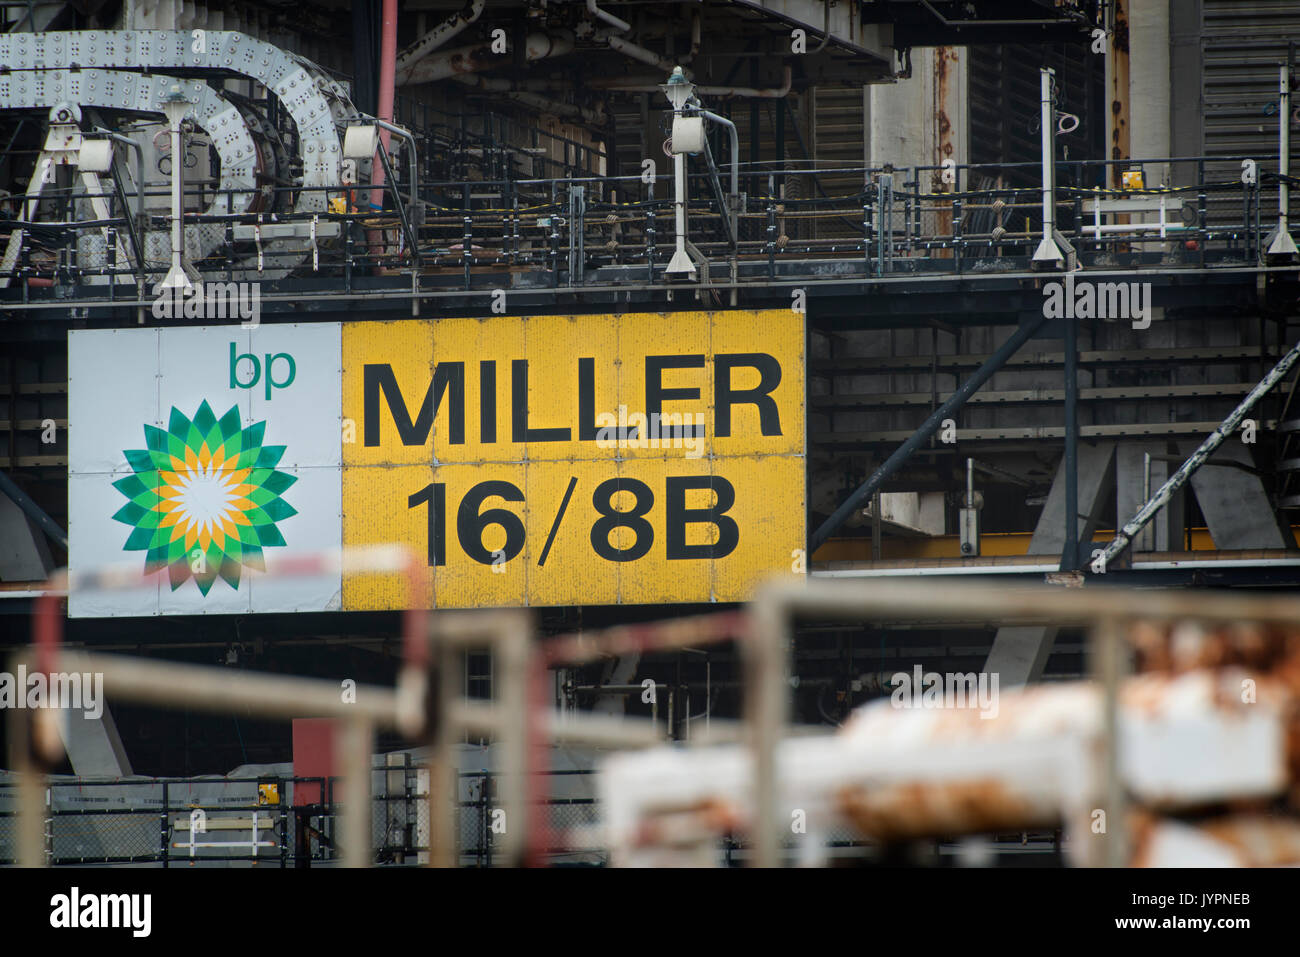 BP Miller North sea oil and gas platform. Taken on the Decommissioning project. credit: LEE RAMSDEN / ALAMY - Stock Image